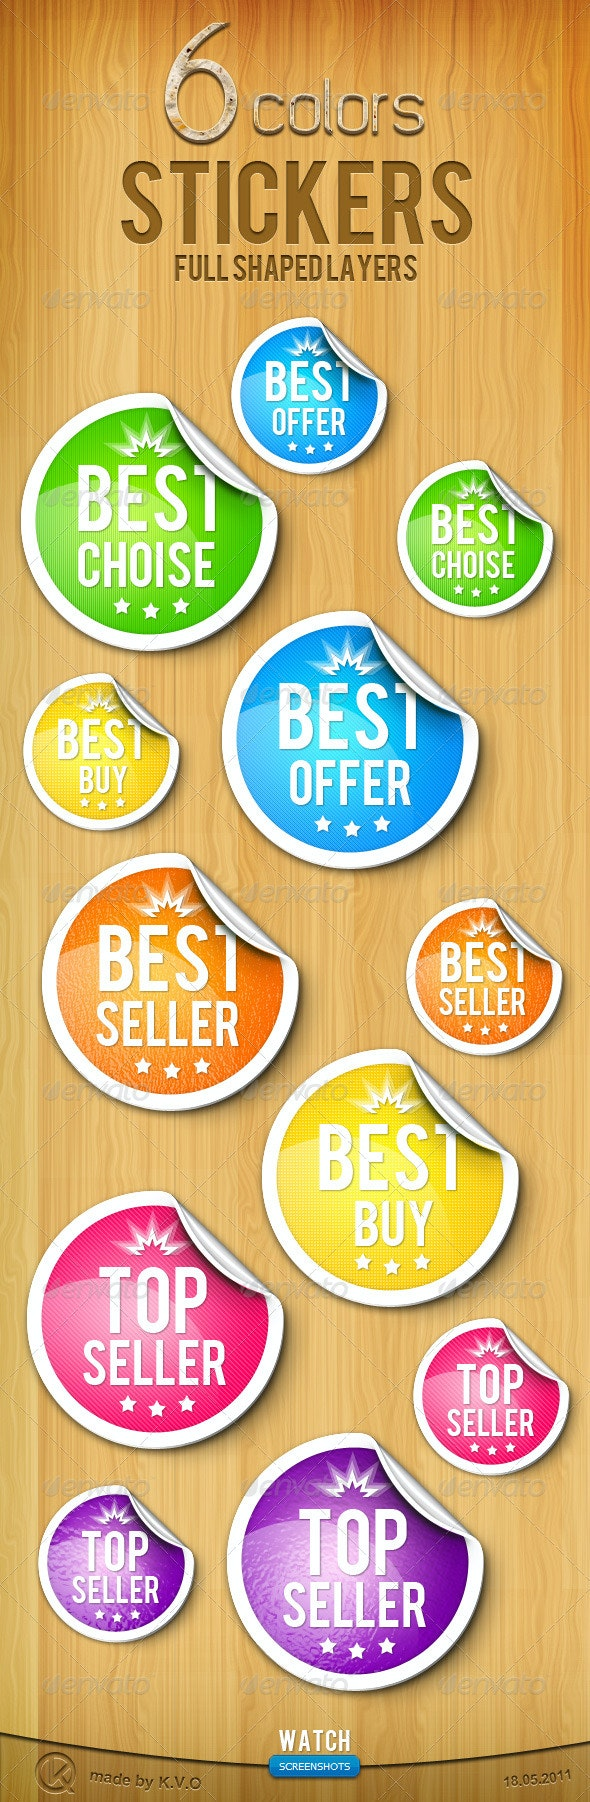 Sheet Rubber Stickers - Badges & Stickers Web Elements